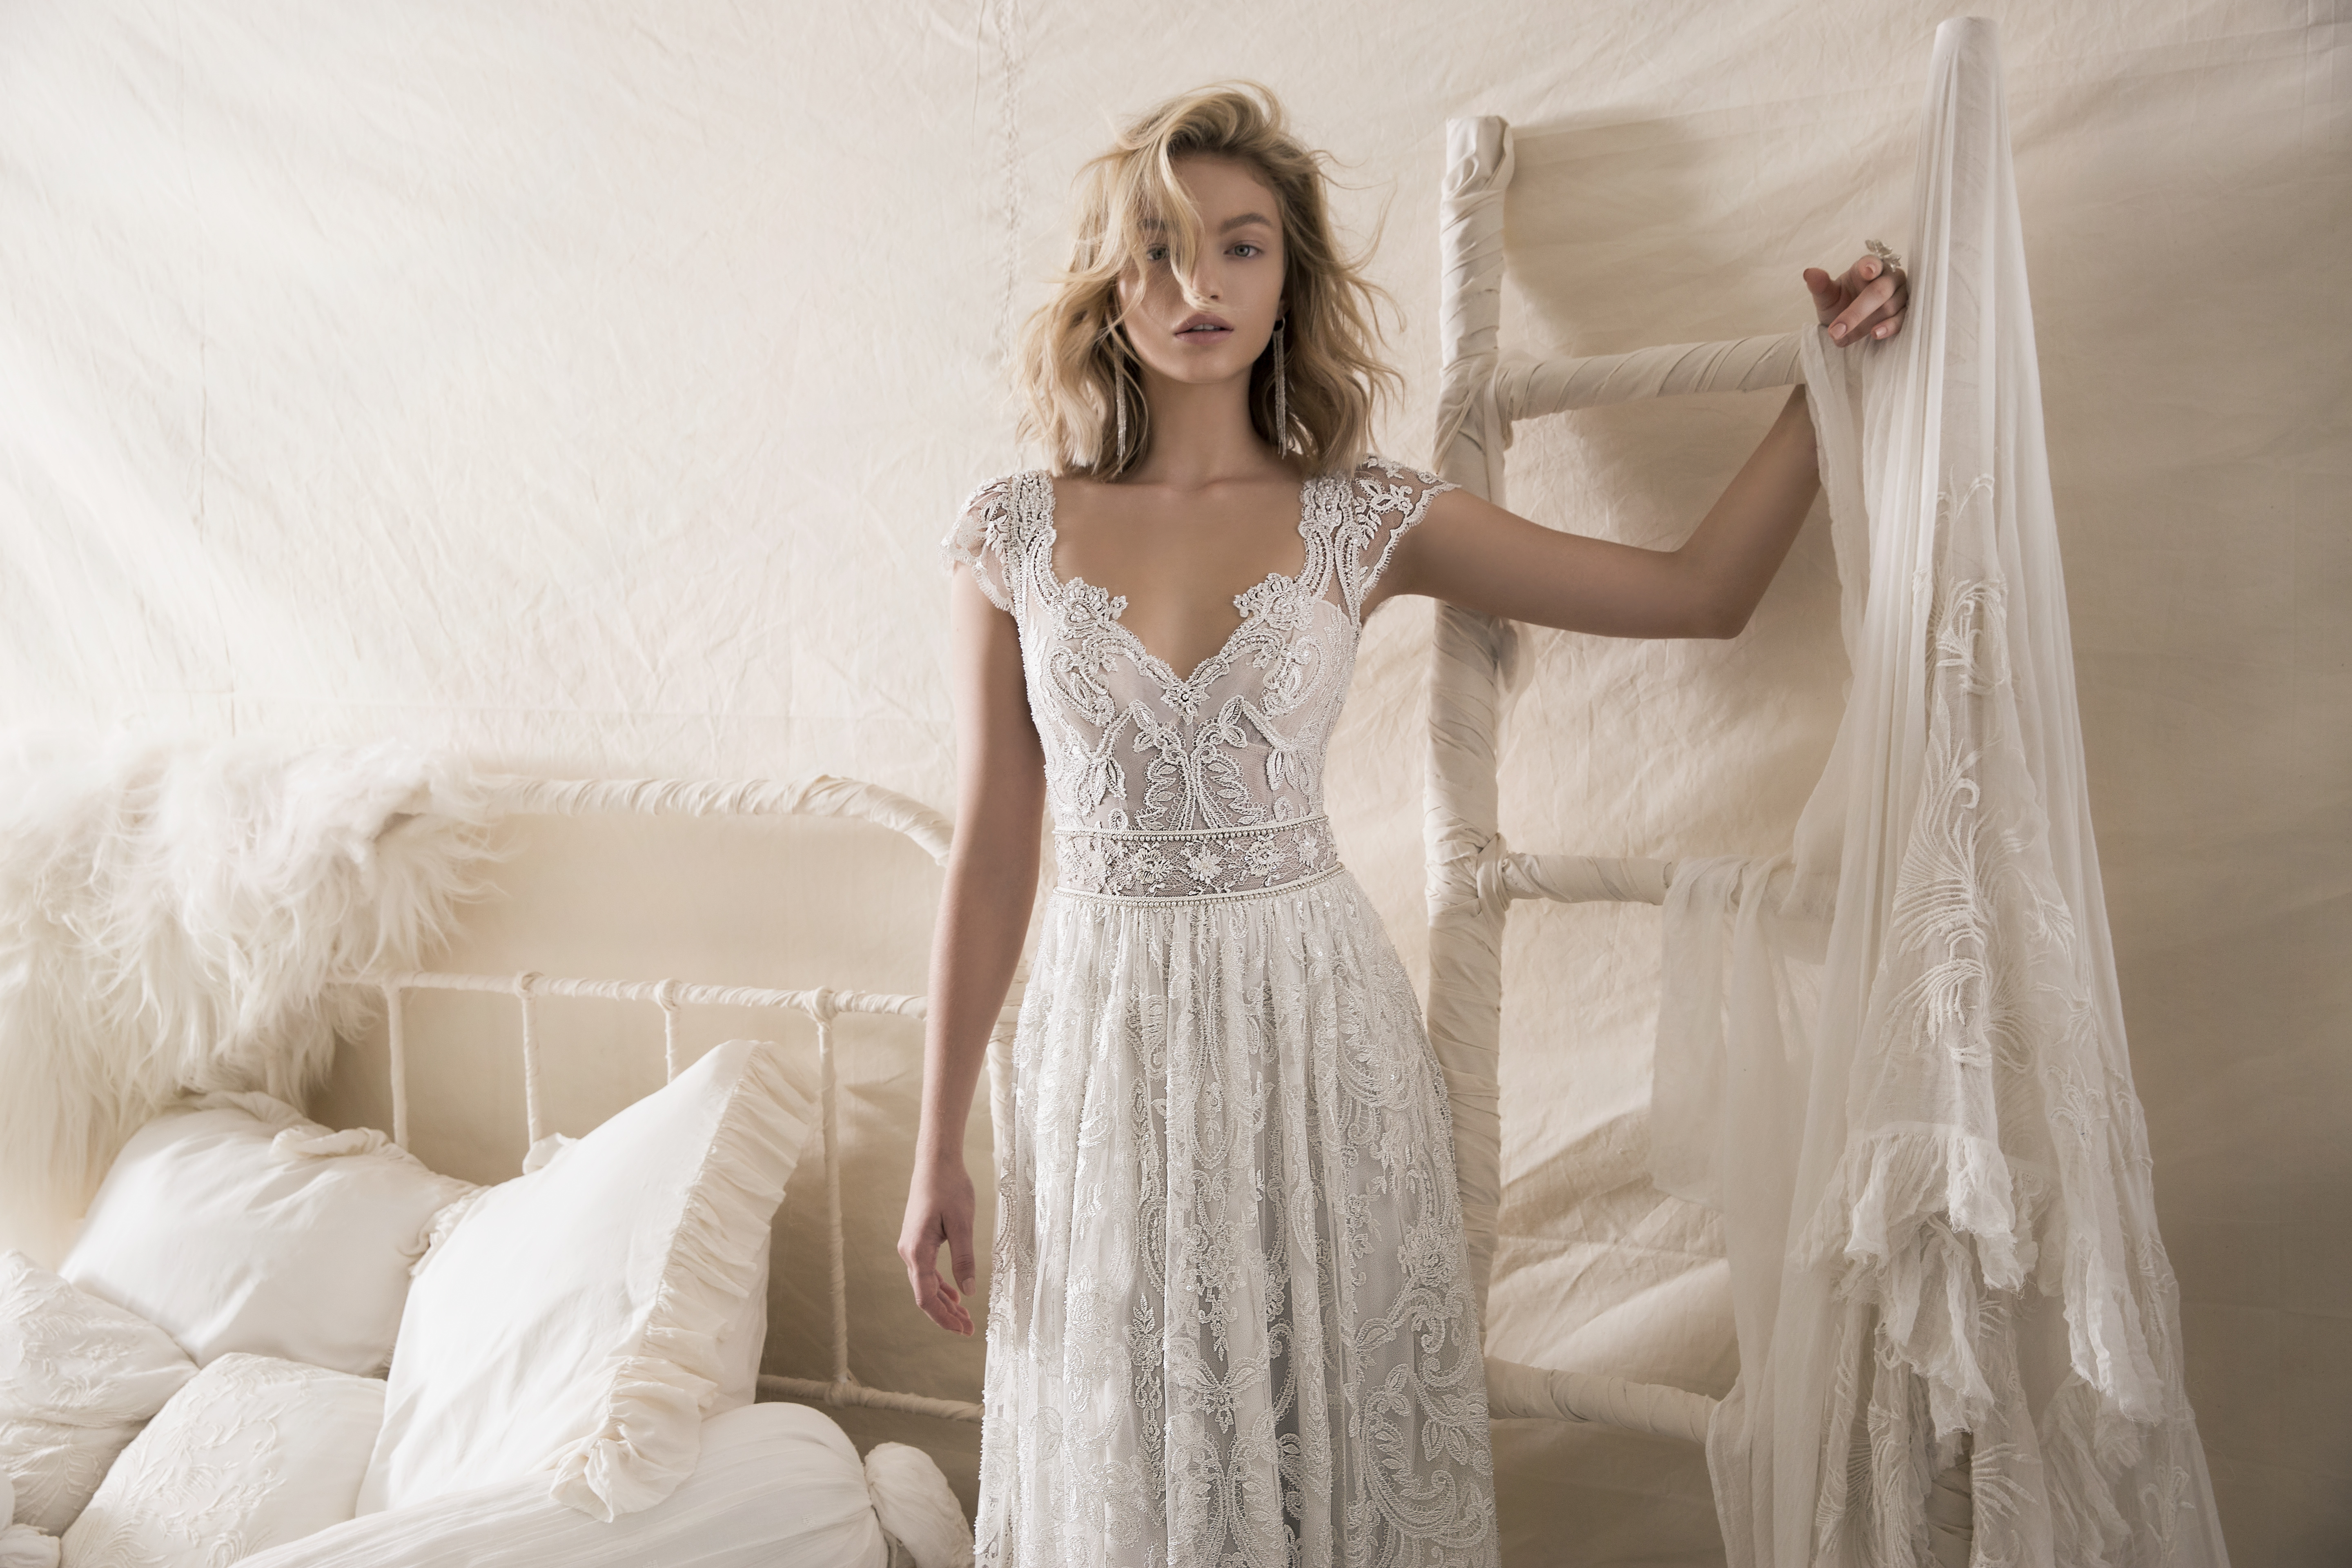 Best Wedding Gown Designers In The World: LIHI HOD FALL 2018 COUTURE COLLECTION